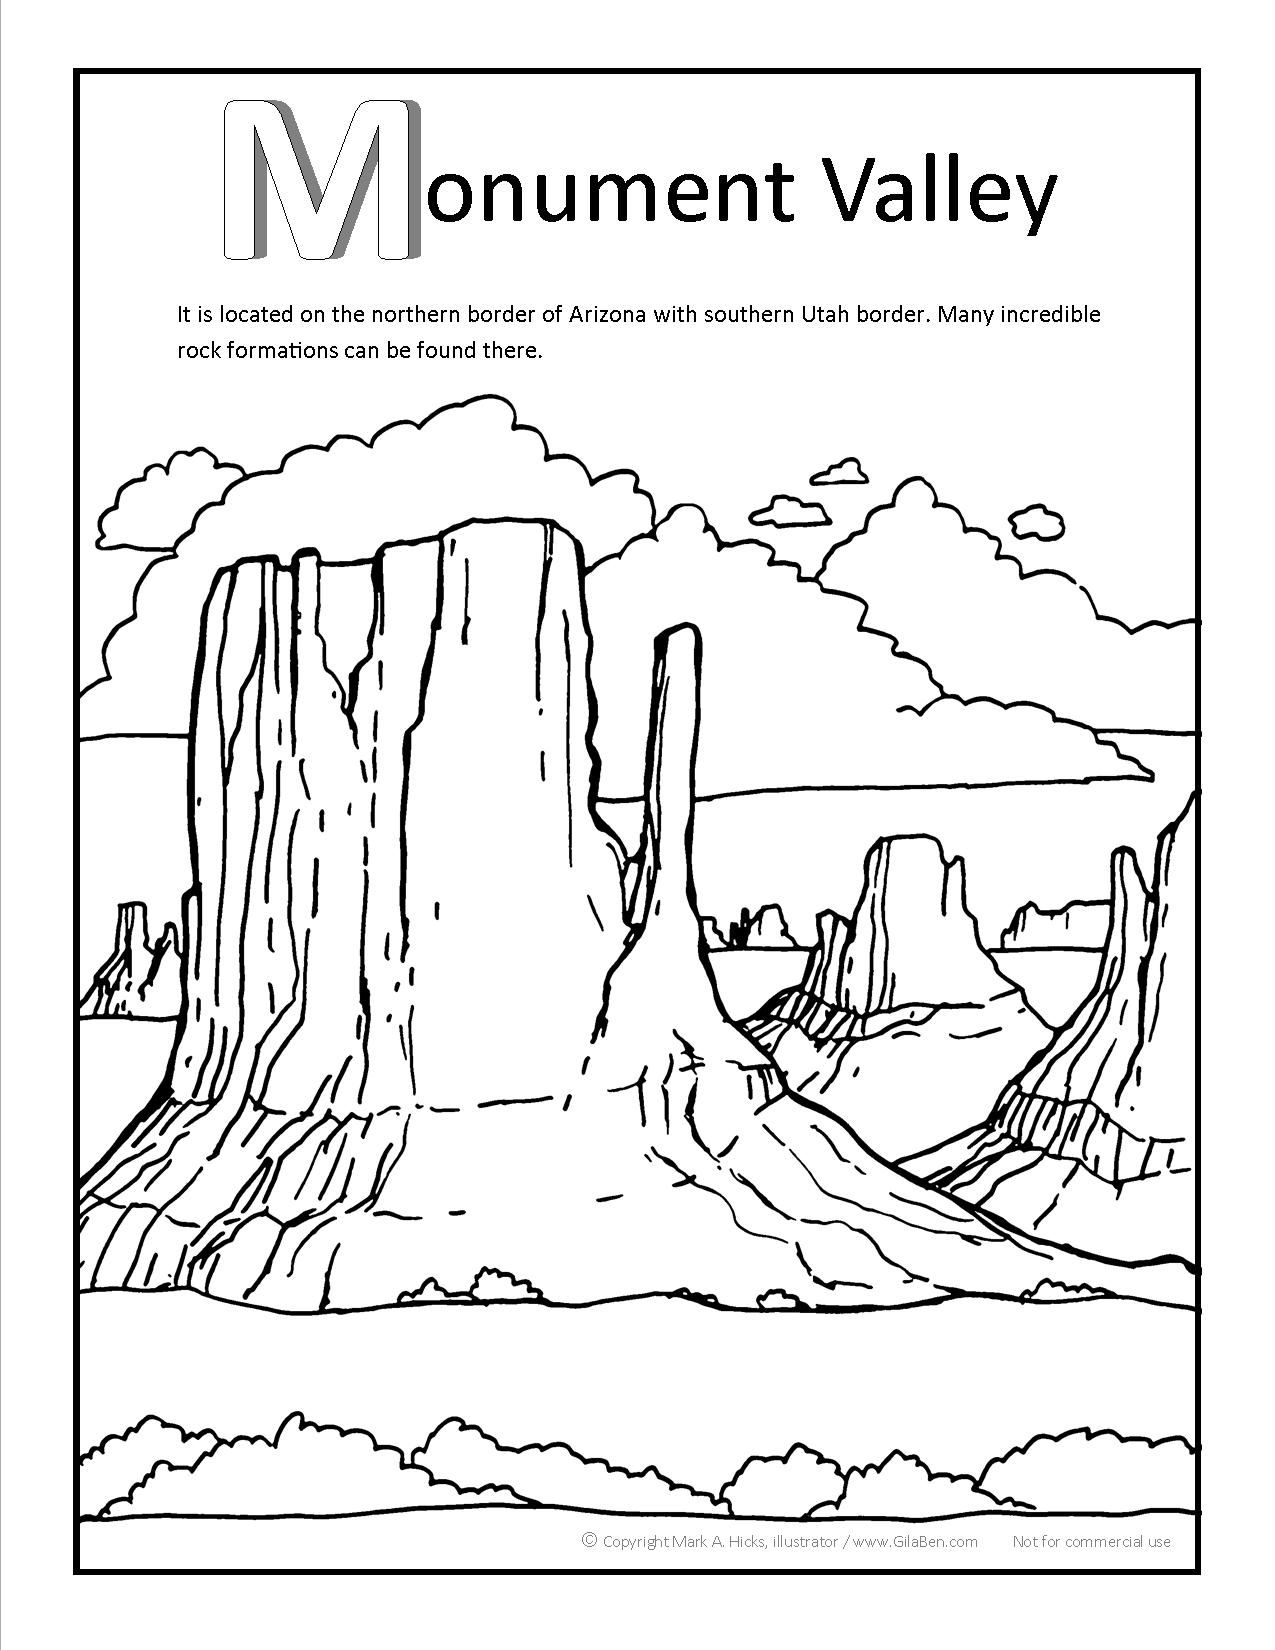 Monument Valley Coloring Page At Gilaben In